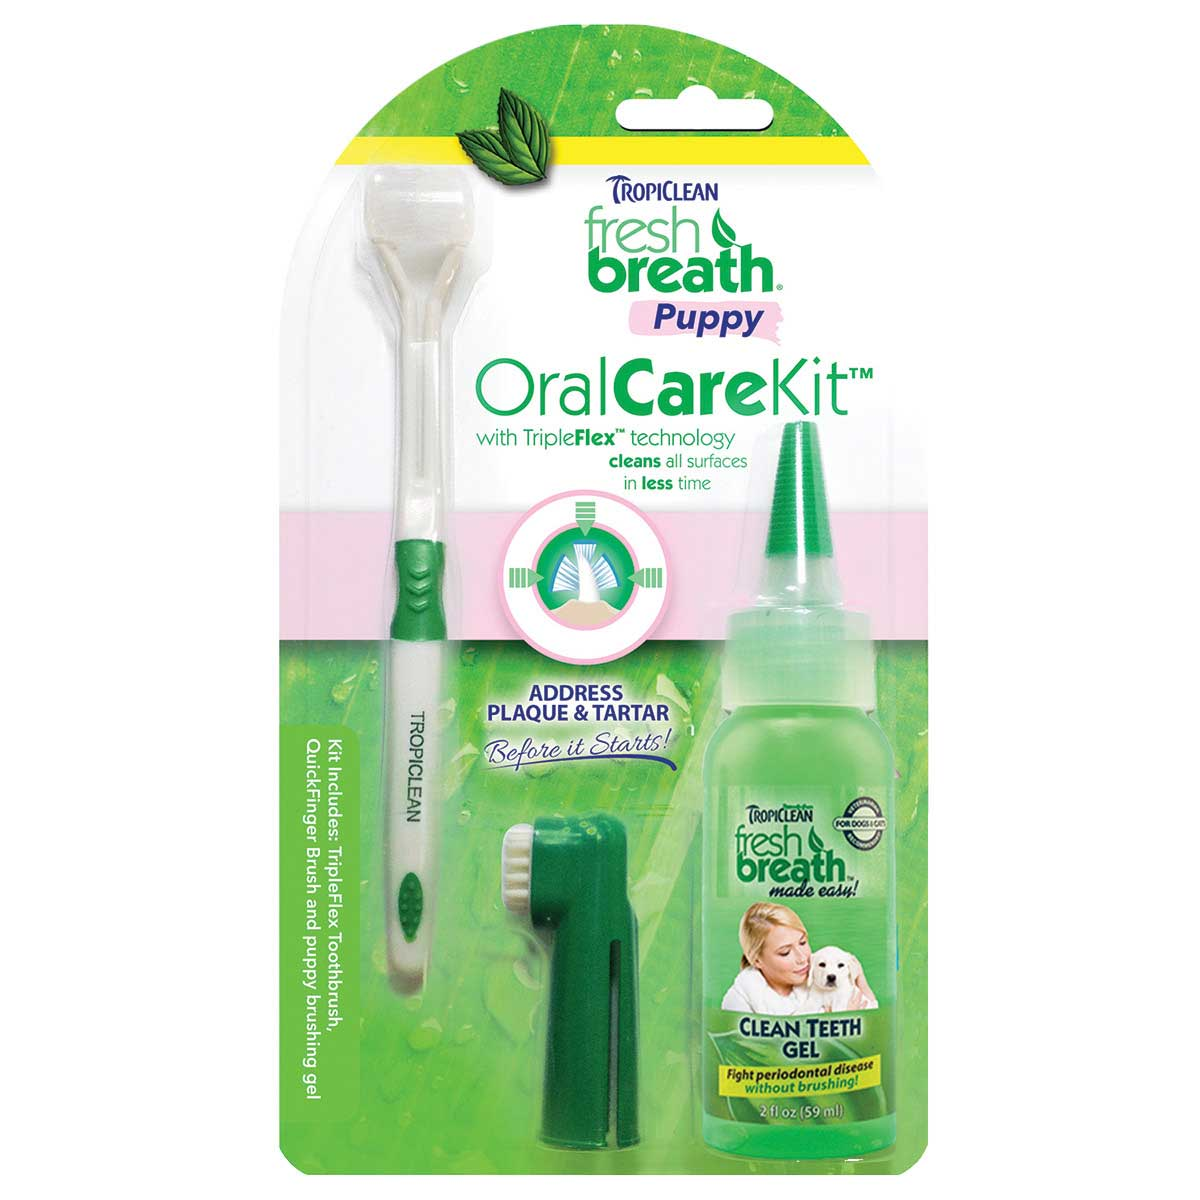 Tropiclean Fresh Breath Puppy Oral Care Kit for Dogs